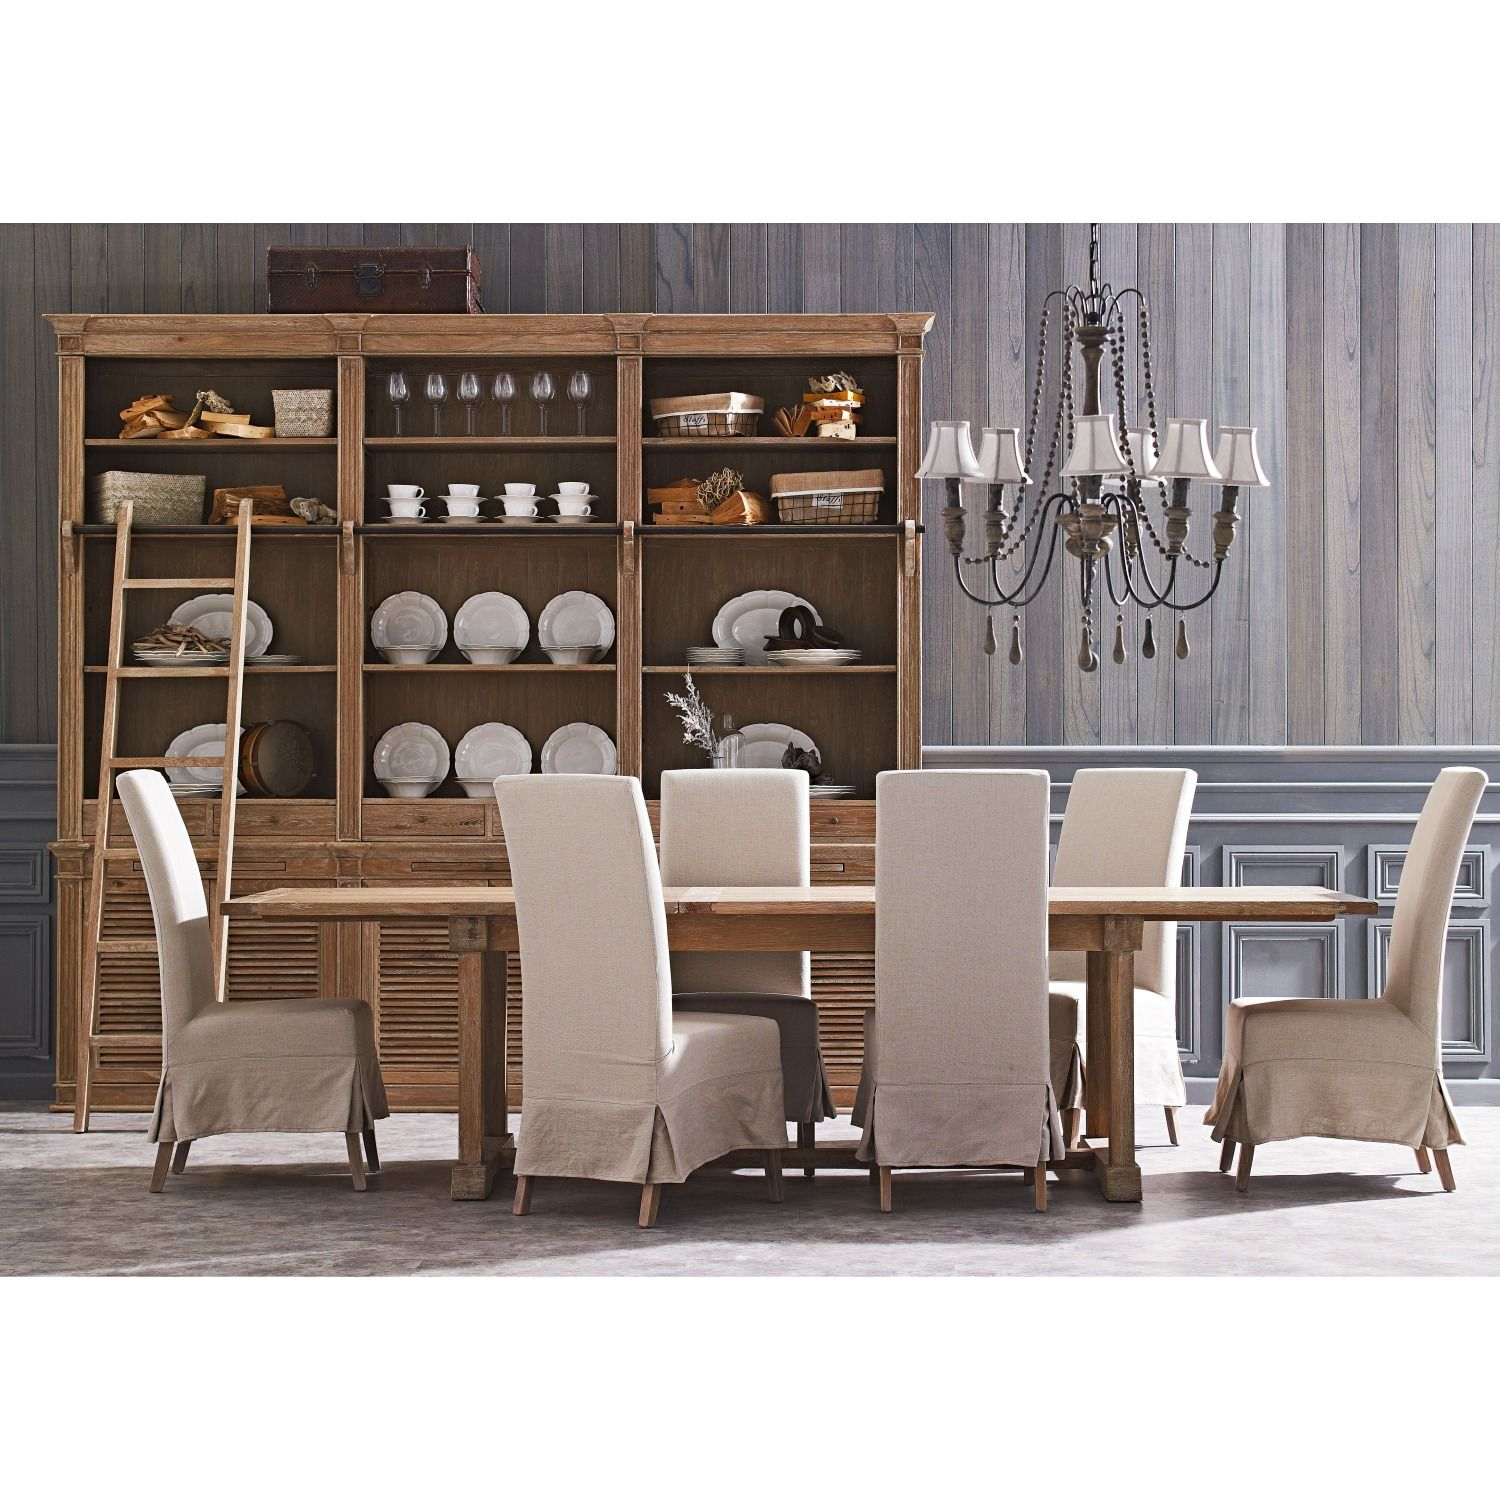 Buckingham extension dining table from domayne online for Dining room extension ideas